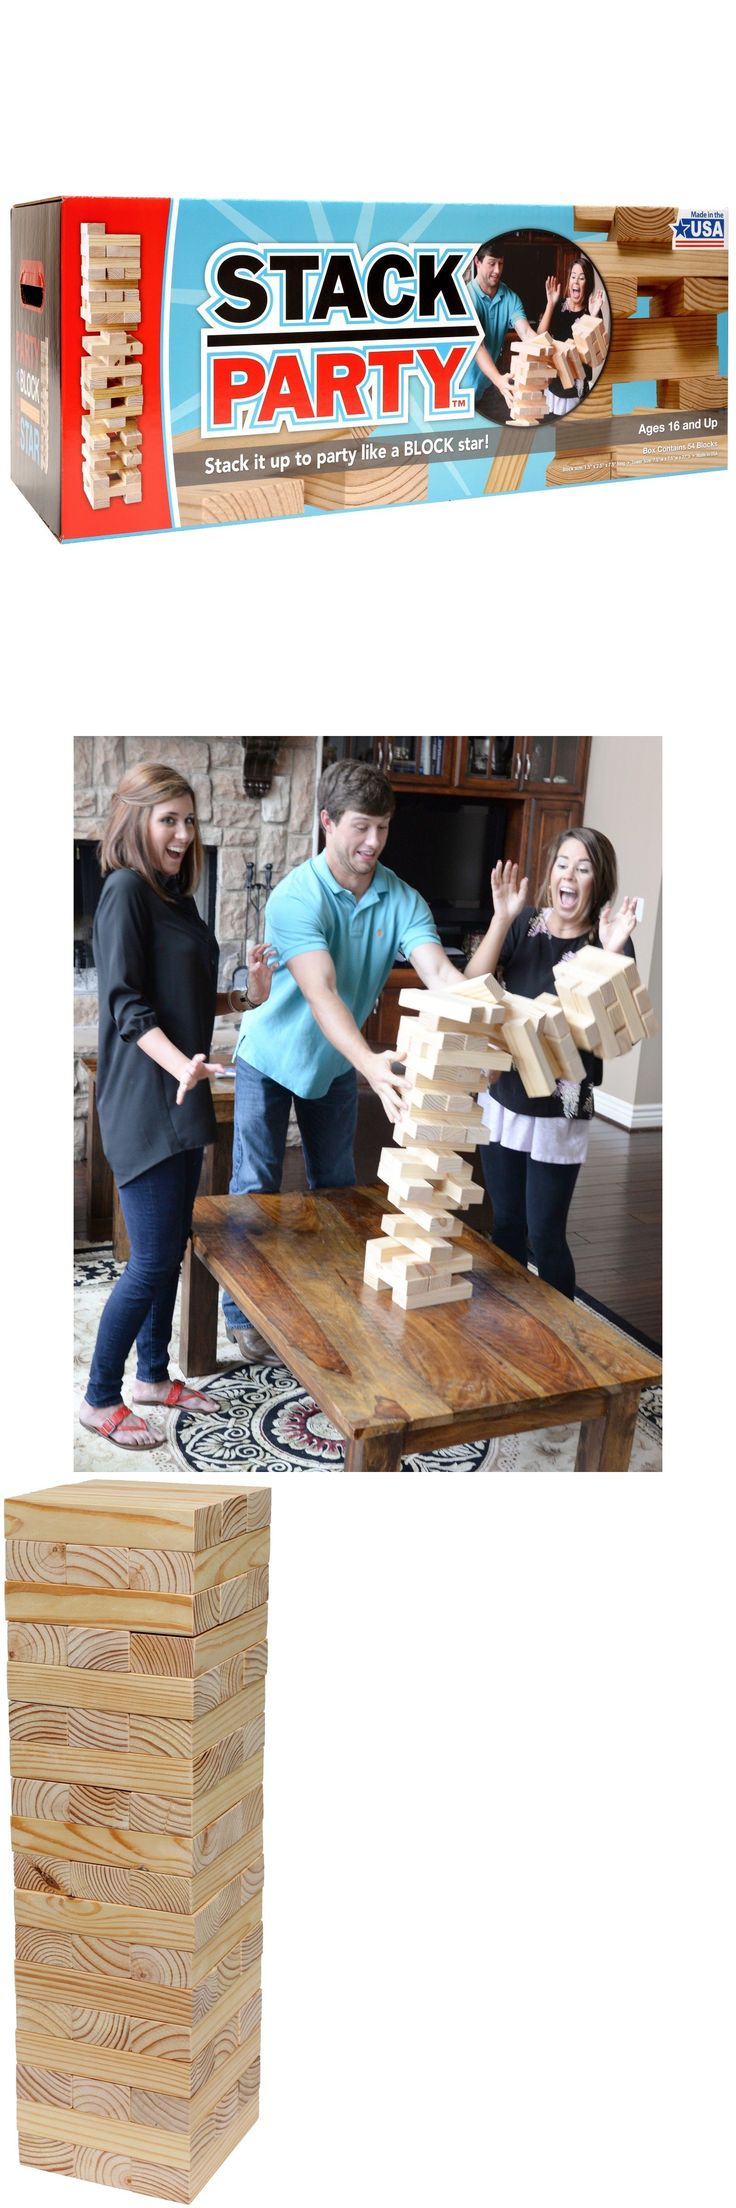 Other Backyard Games 159081: Stack Party - Giant Tumbling Tower Game BUY IT NOW ONLY: $64.99